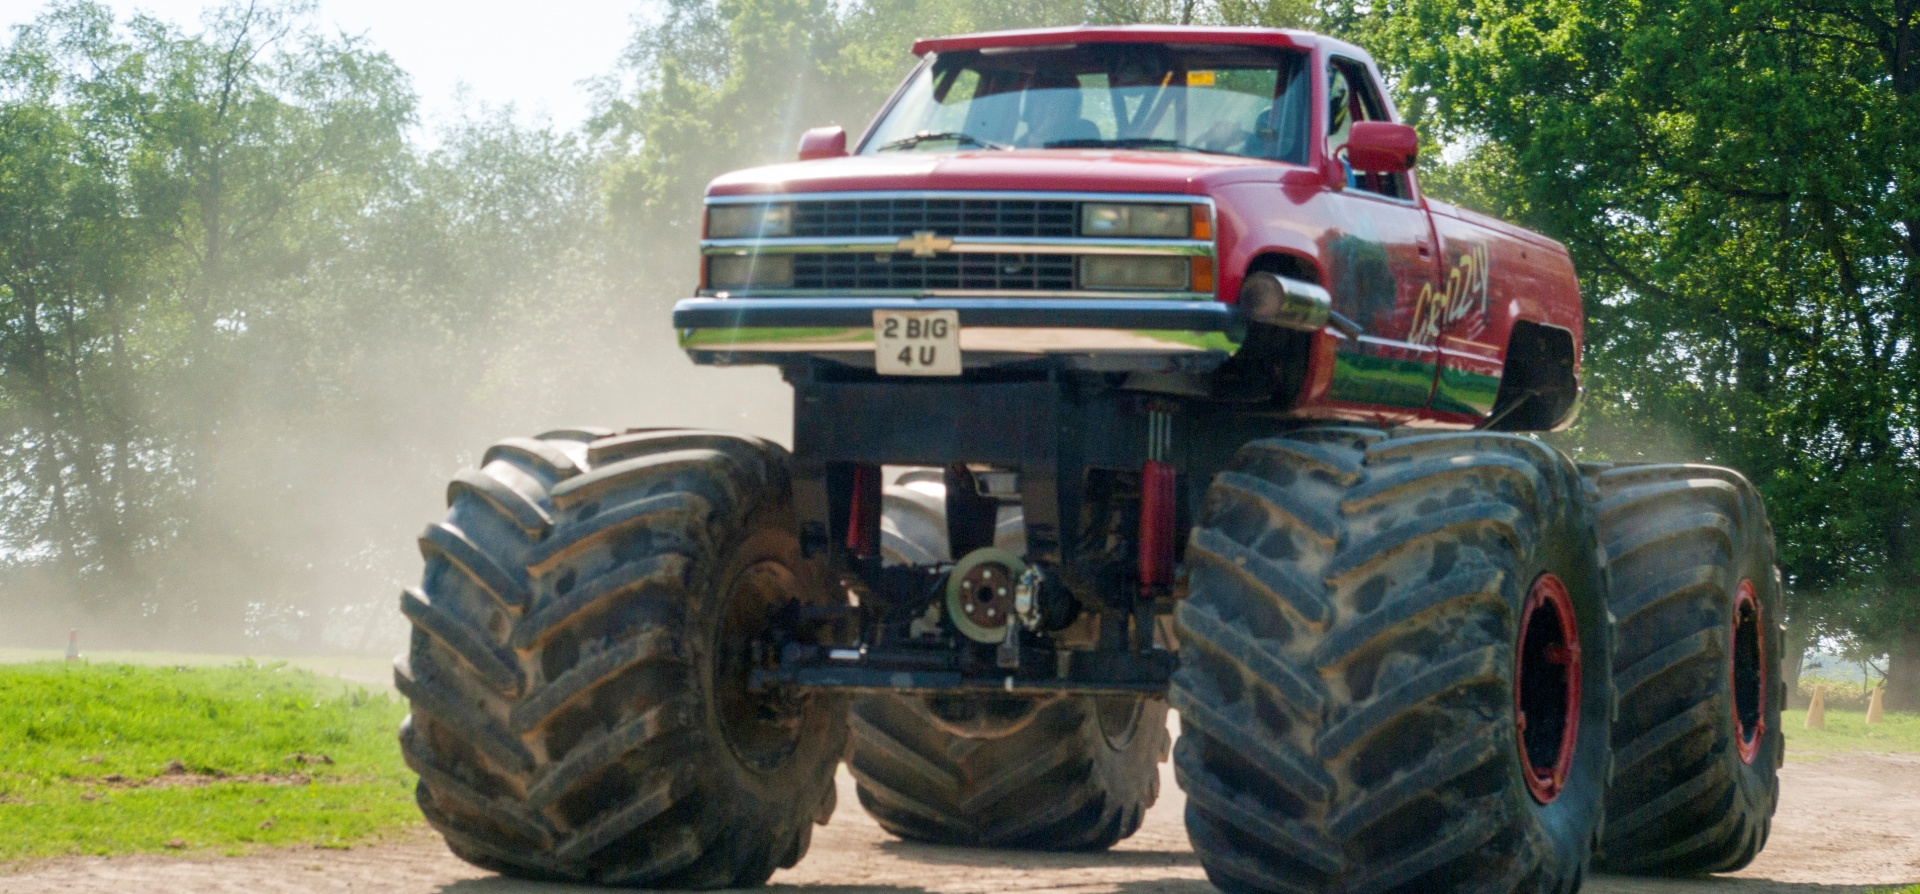 Monster Truck Driving Experience - Sussex-6